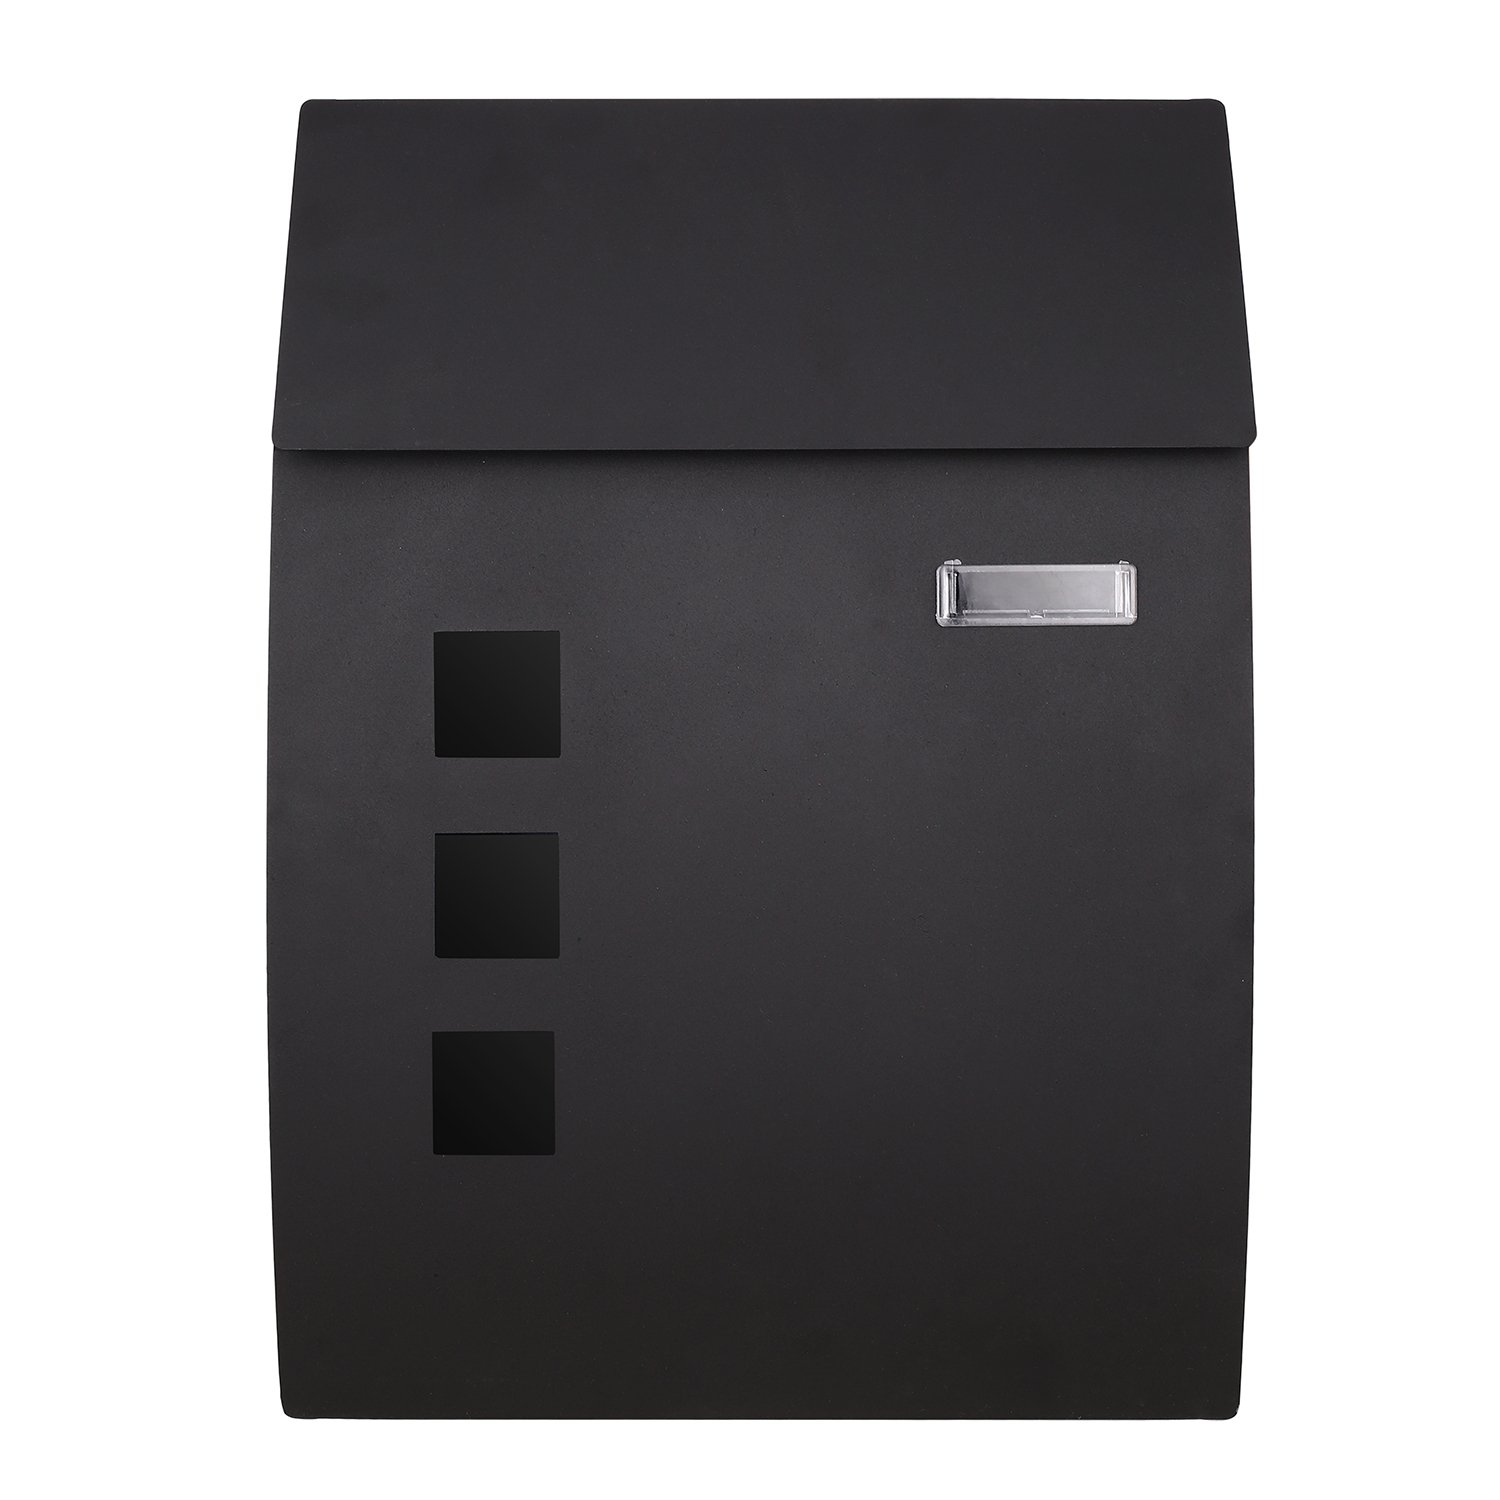 Simlive Wall Mounted Iron Letterbox/Post Box Outdoor Lockable Mailbox with 2 Keys for Outside Waterproof Safety